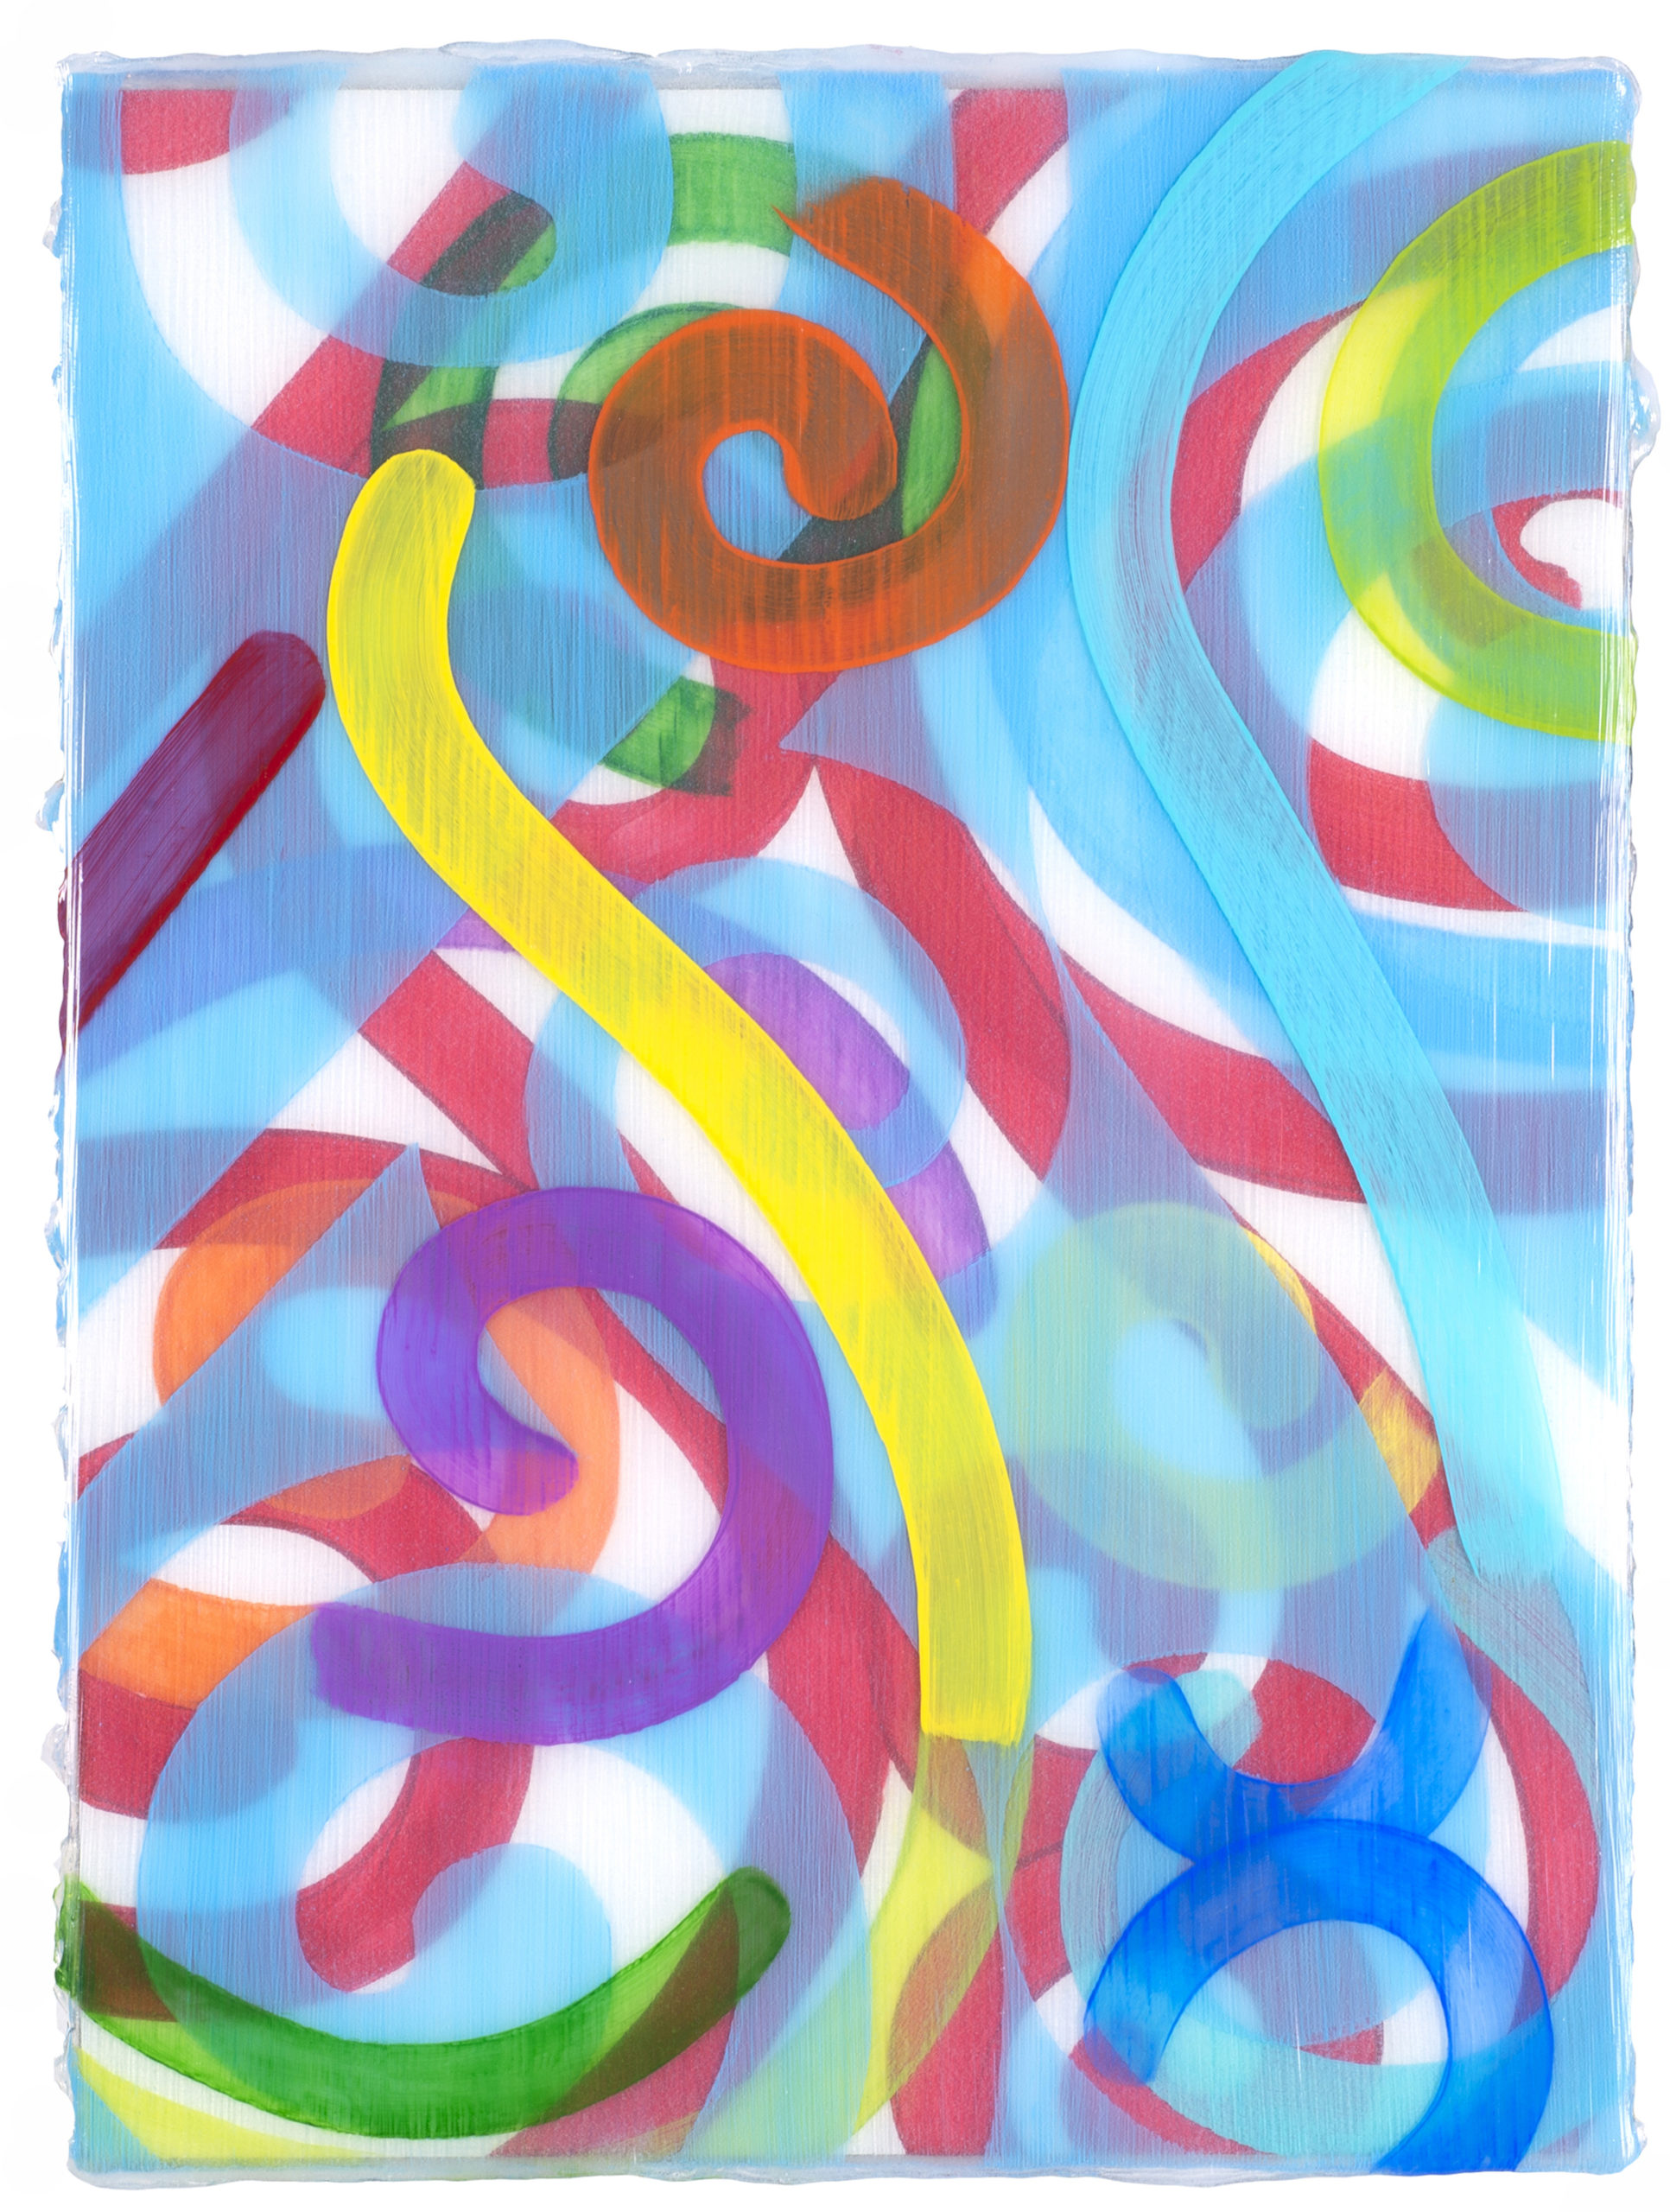 Shea's Victoria XII study (railings) 2020 acrylic on board 14x11in by Contemporary Canadian Artist Katharine Harvey